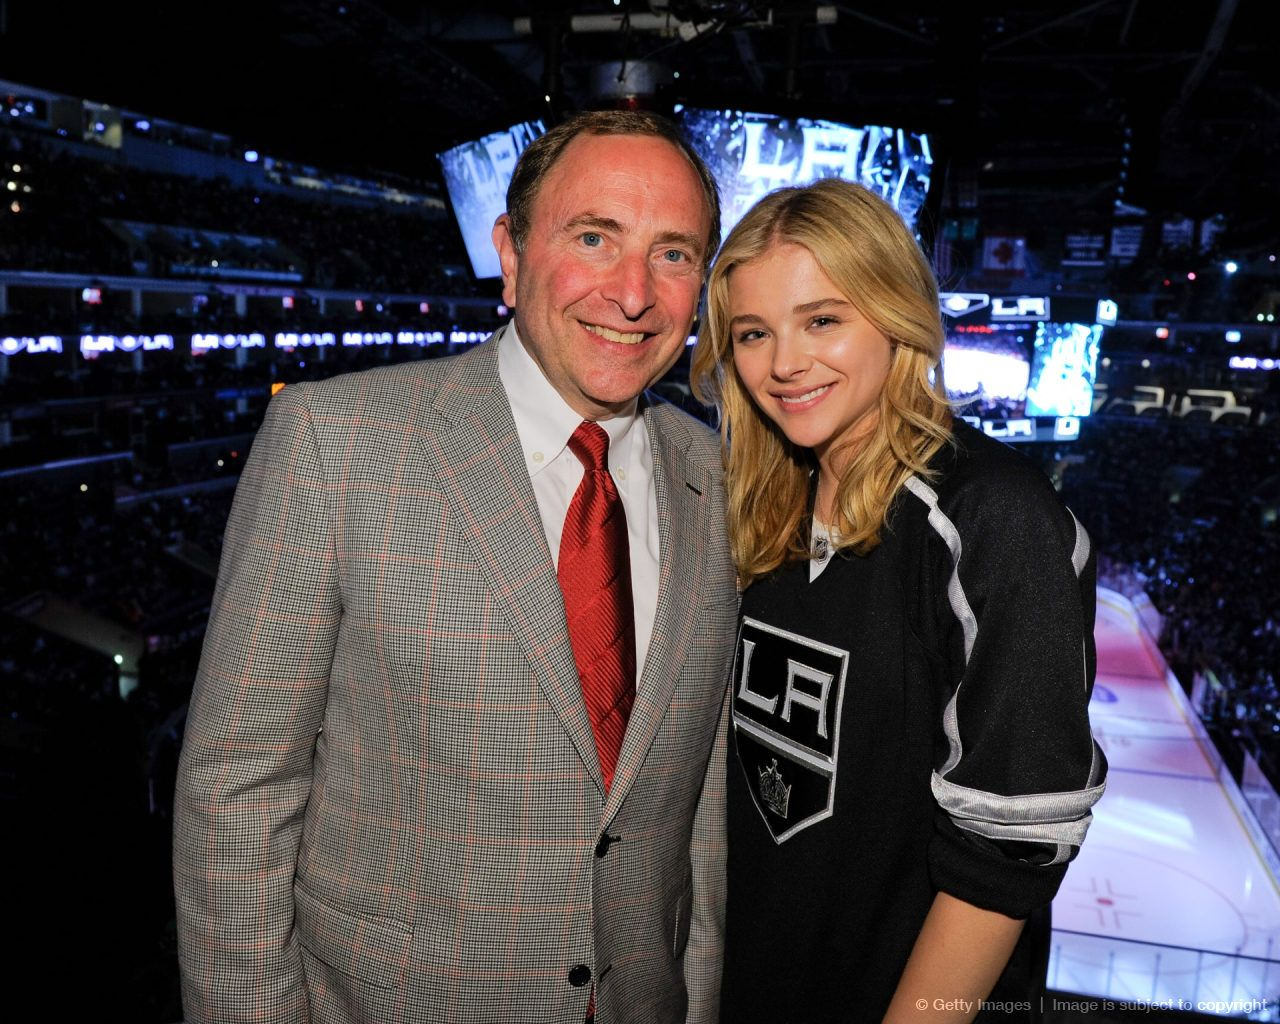 Chloe Grace Moretz - Rangers vs Kings, Staples Center in Los Angeles - June 2014